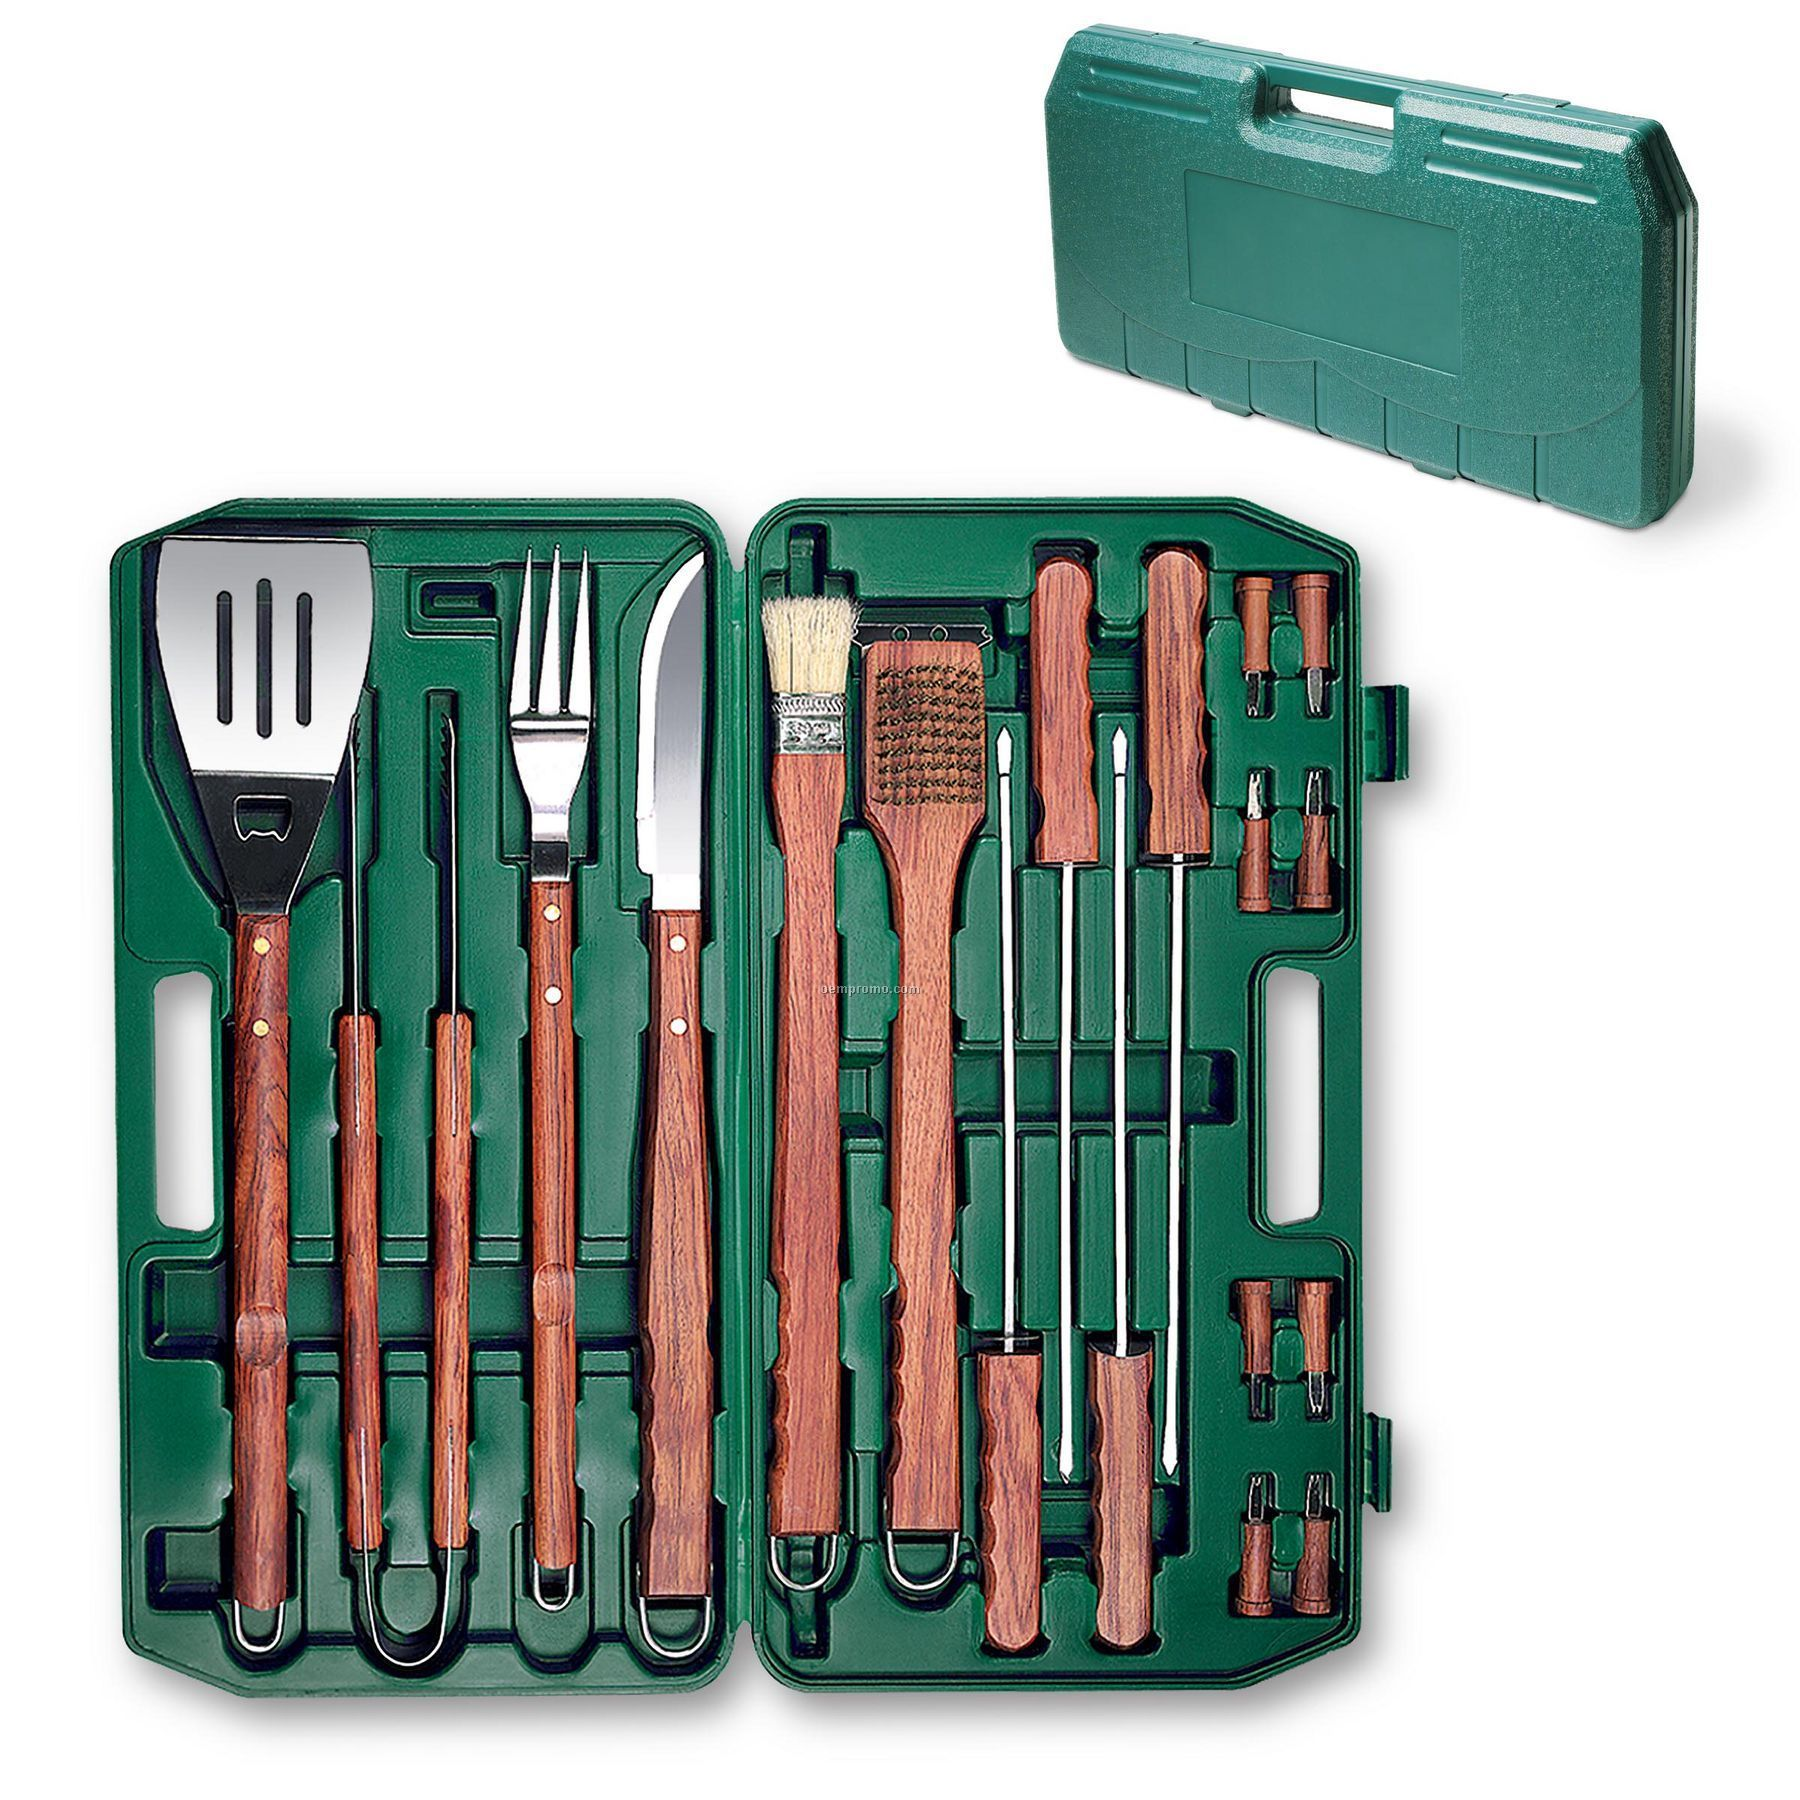 18 Piece Deluxe Bbq Utensil Set W/ Hanging Loops In Green Plastic Case